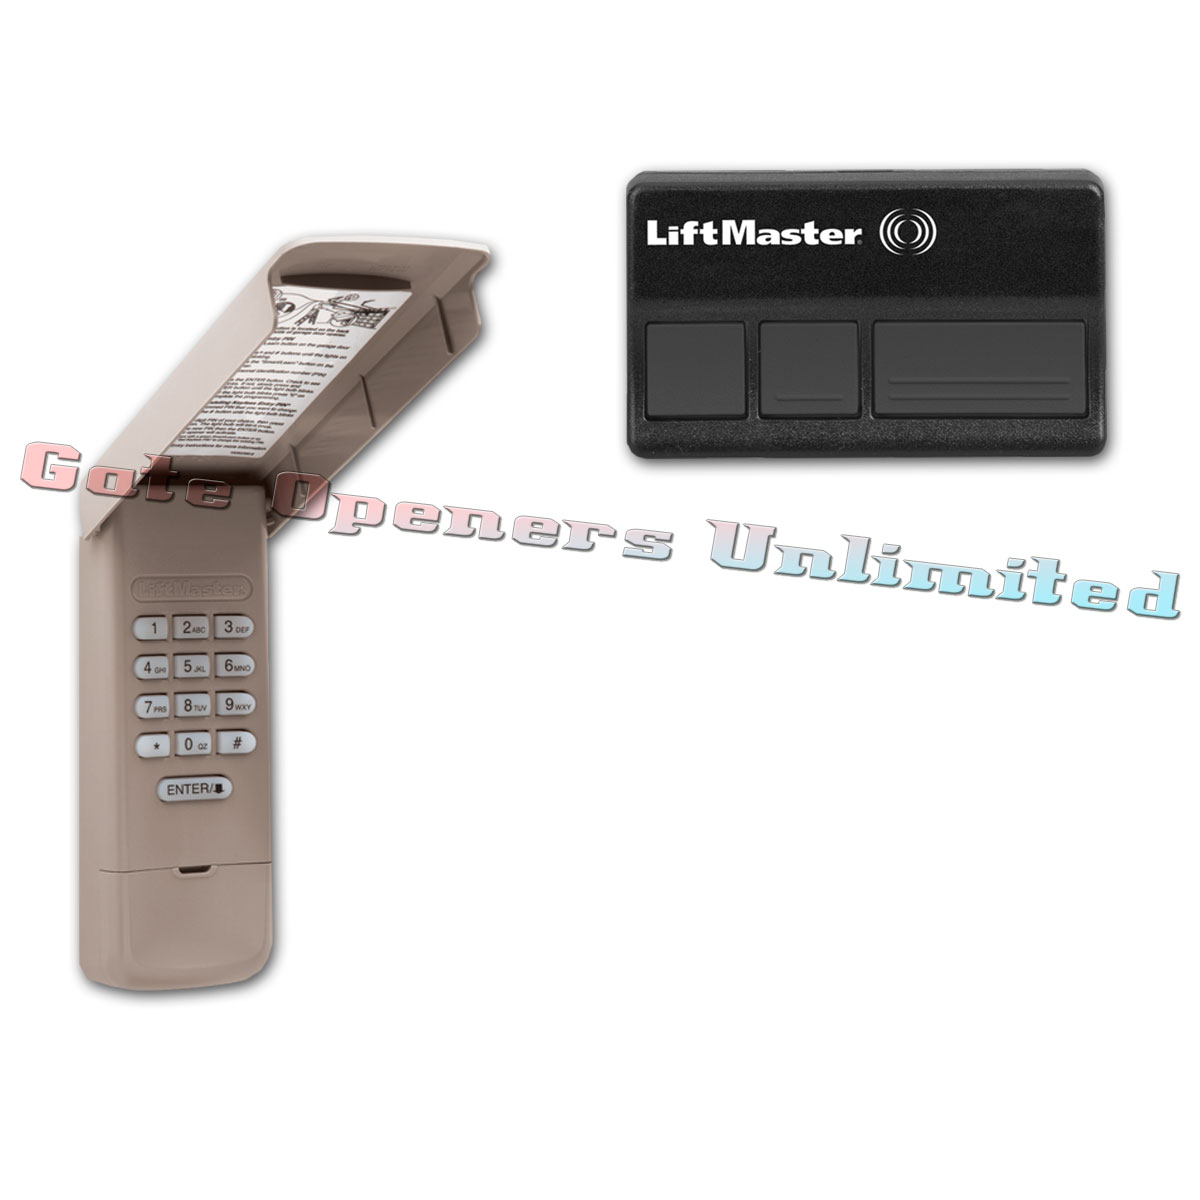 Liftmaster ACKIT 315Mhz Pack (1) 373LM Remotes & (1 ...